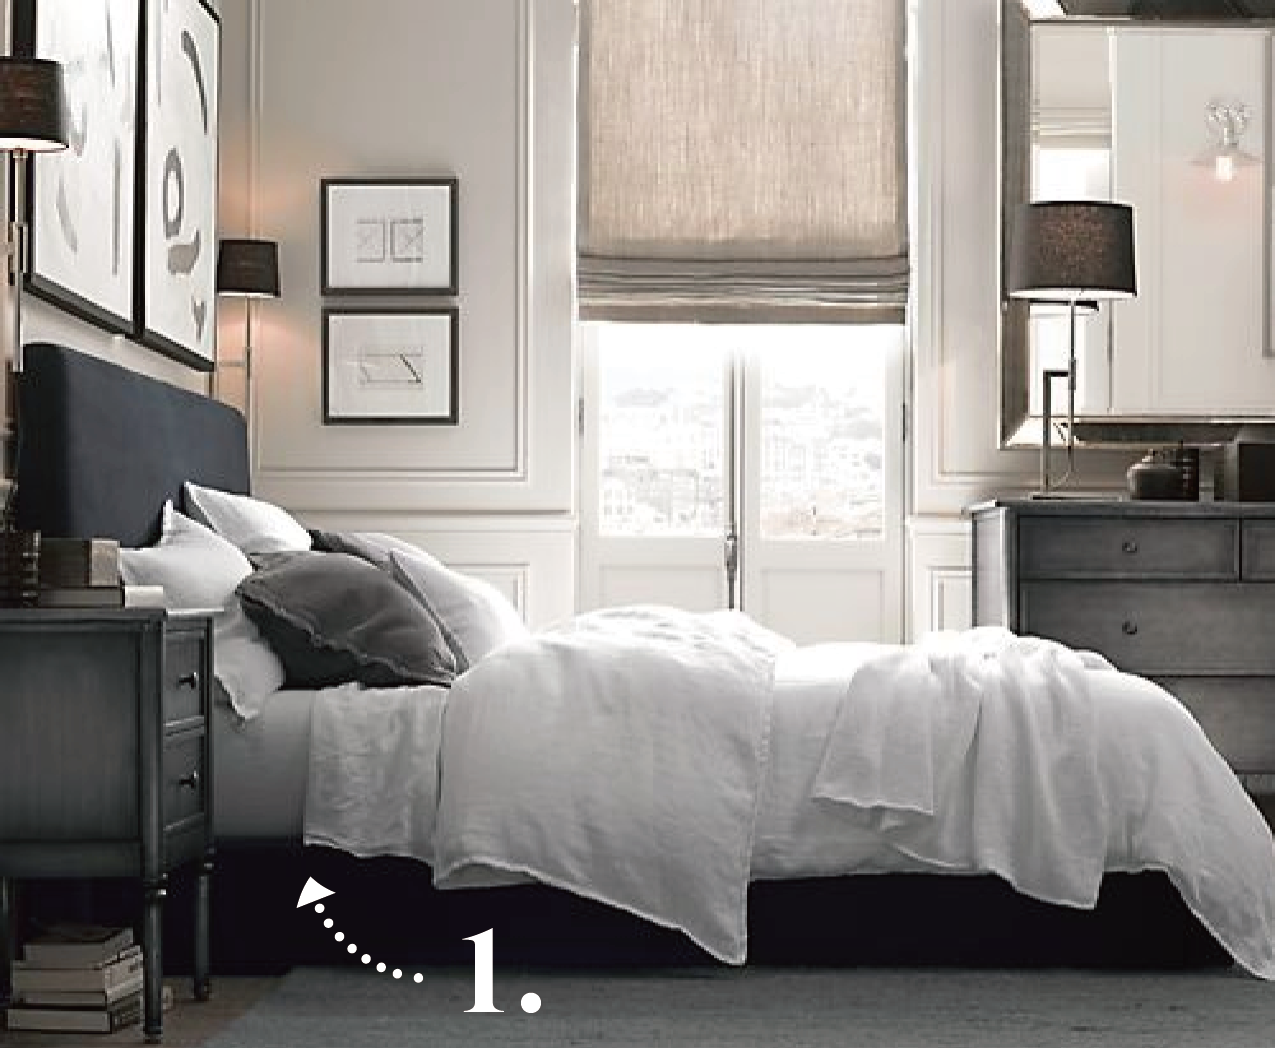 Restoration hardware catalogue bedroom interiors blog - Restoration hardware bedroom furniture ...